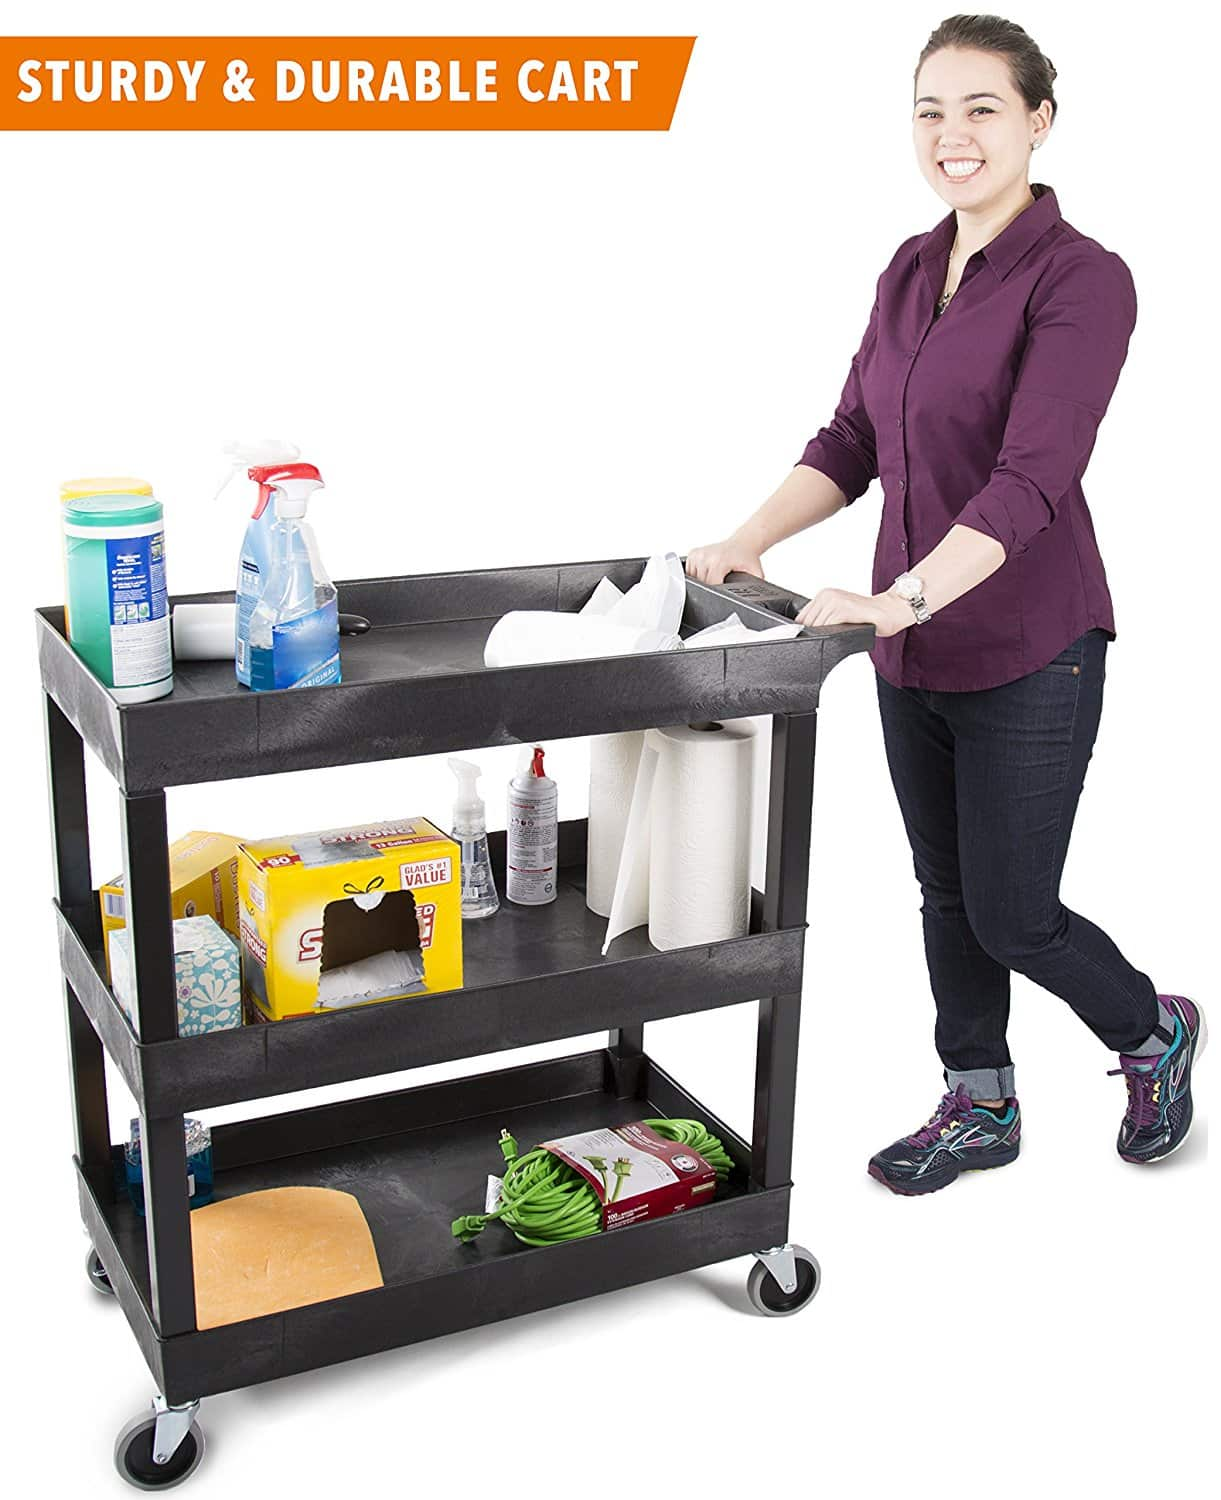 Top 10 Best Utility Carts in 2020 Reviews & Buying Guide